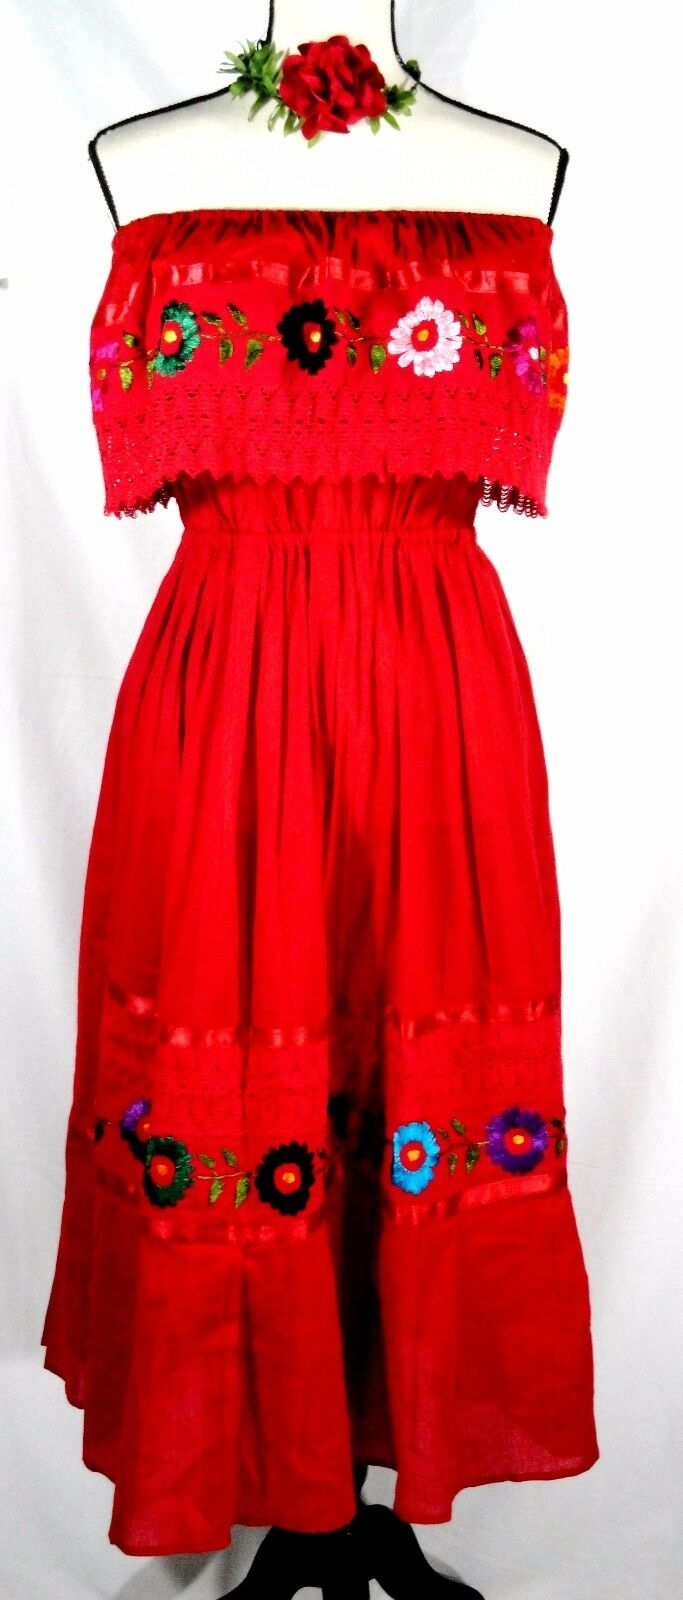 HAND Embroidered Crochet RED Mexican DRESS Floral PEASANT Vintage 1 Sz COTTON